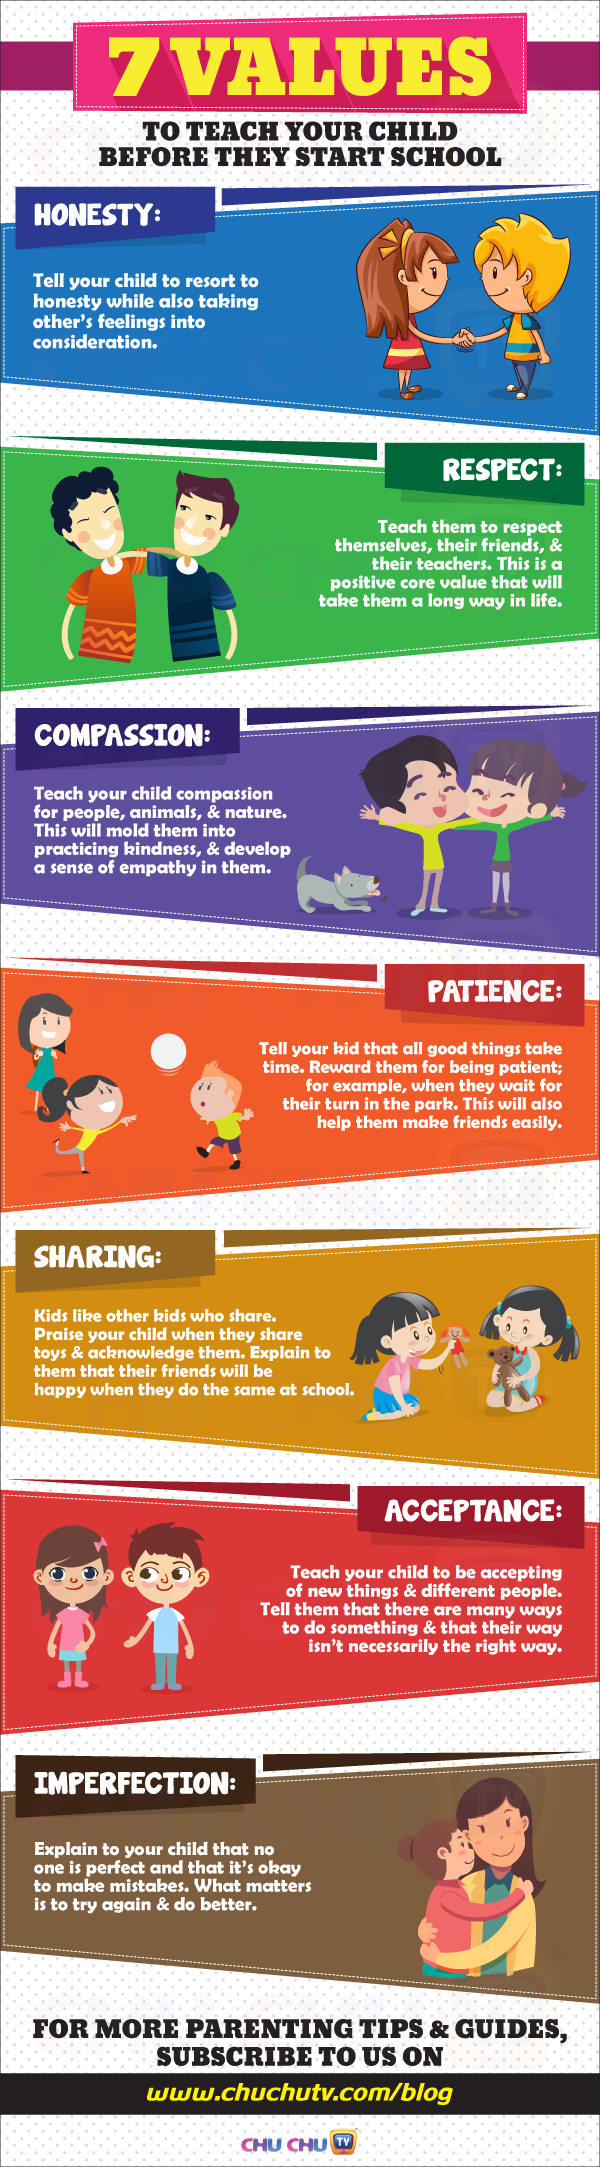 7 Values to Teach Your Child Before They Start School